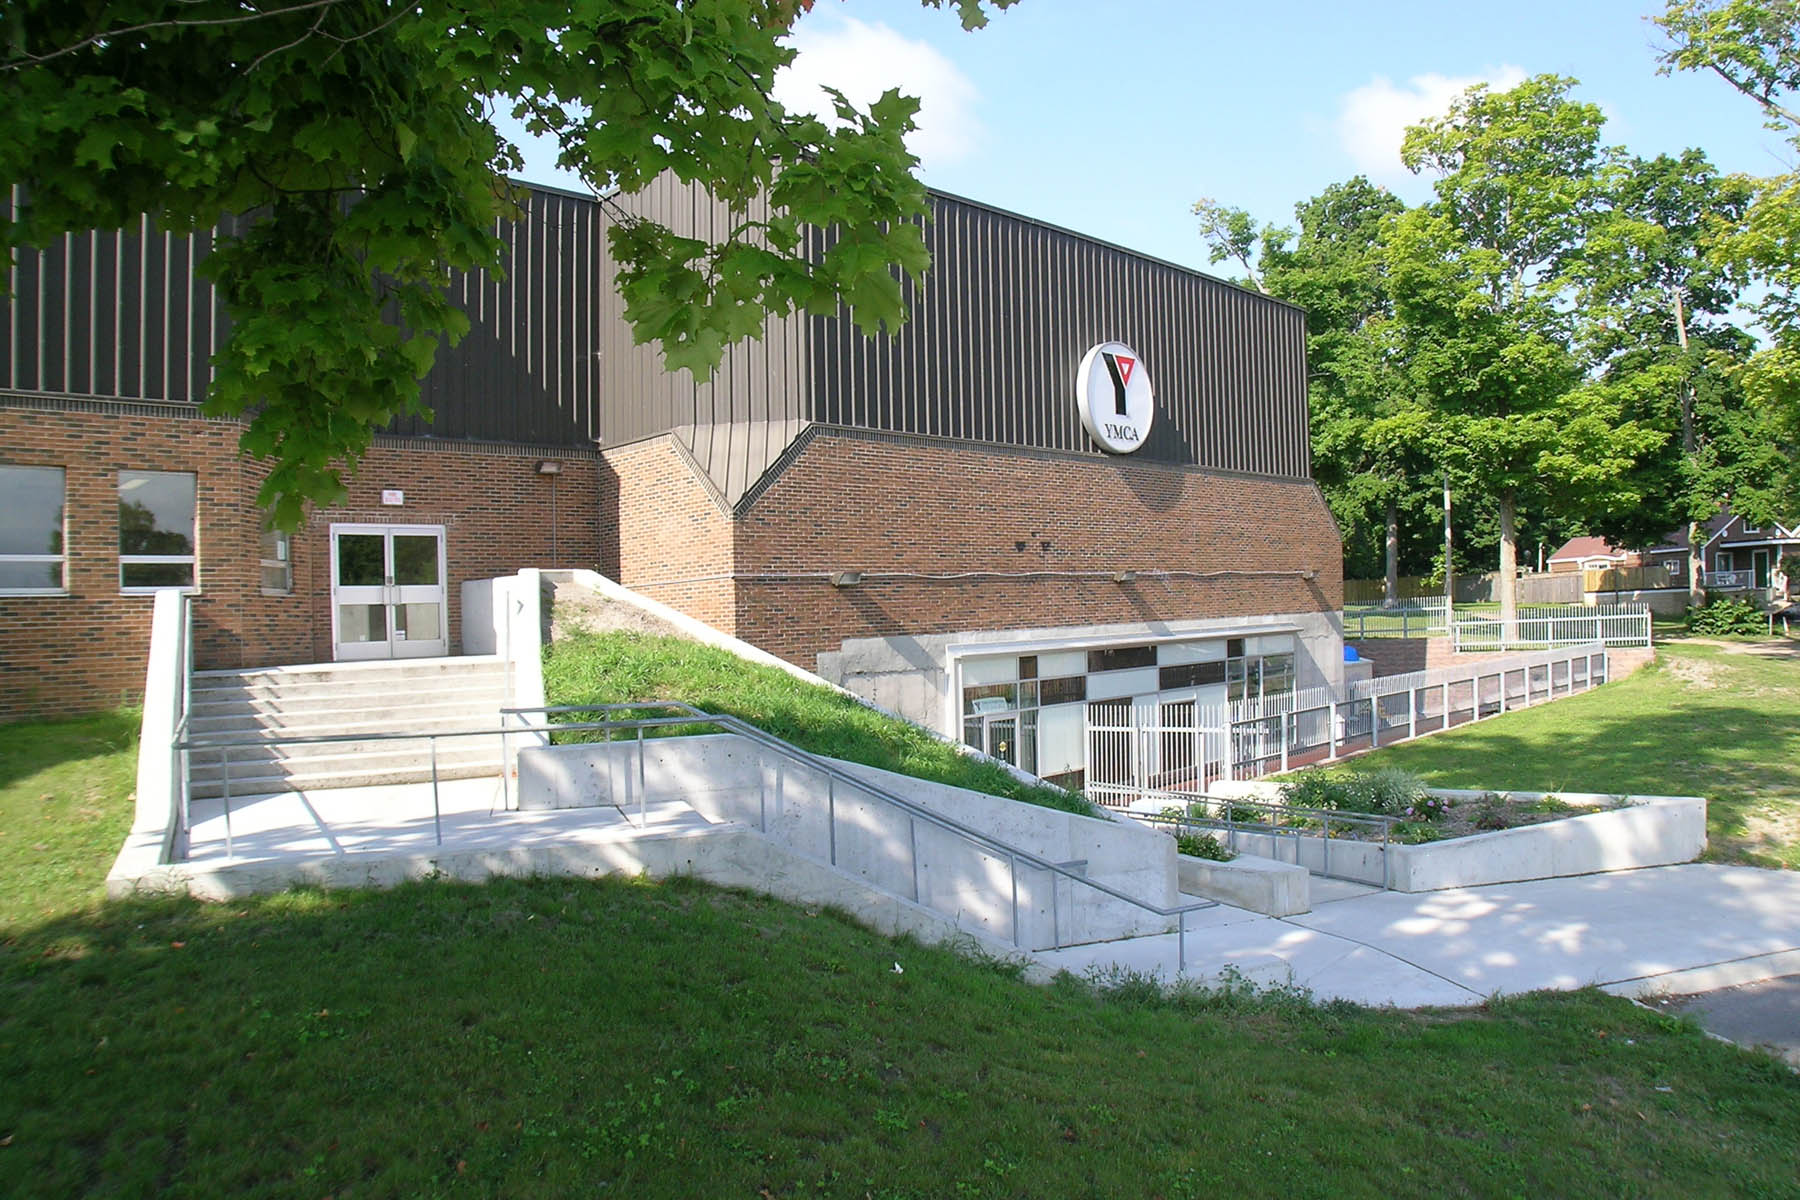 Exterior with the Y logo and staircase entrance to second level and ramp entrance at ground level